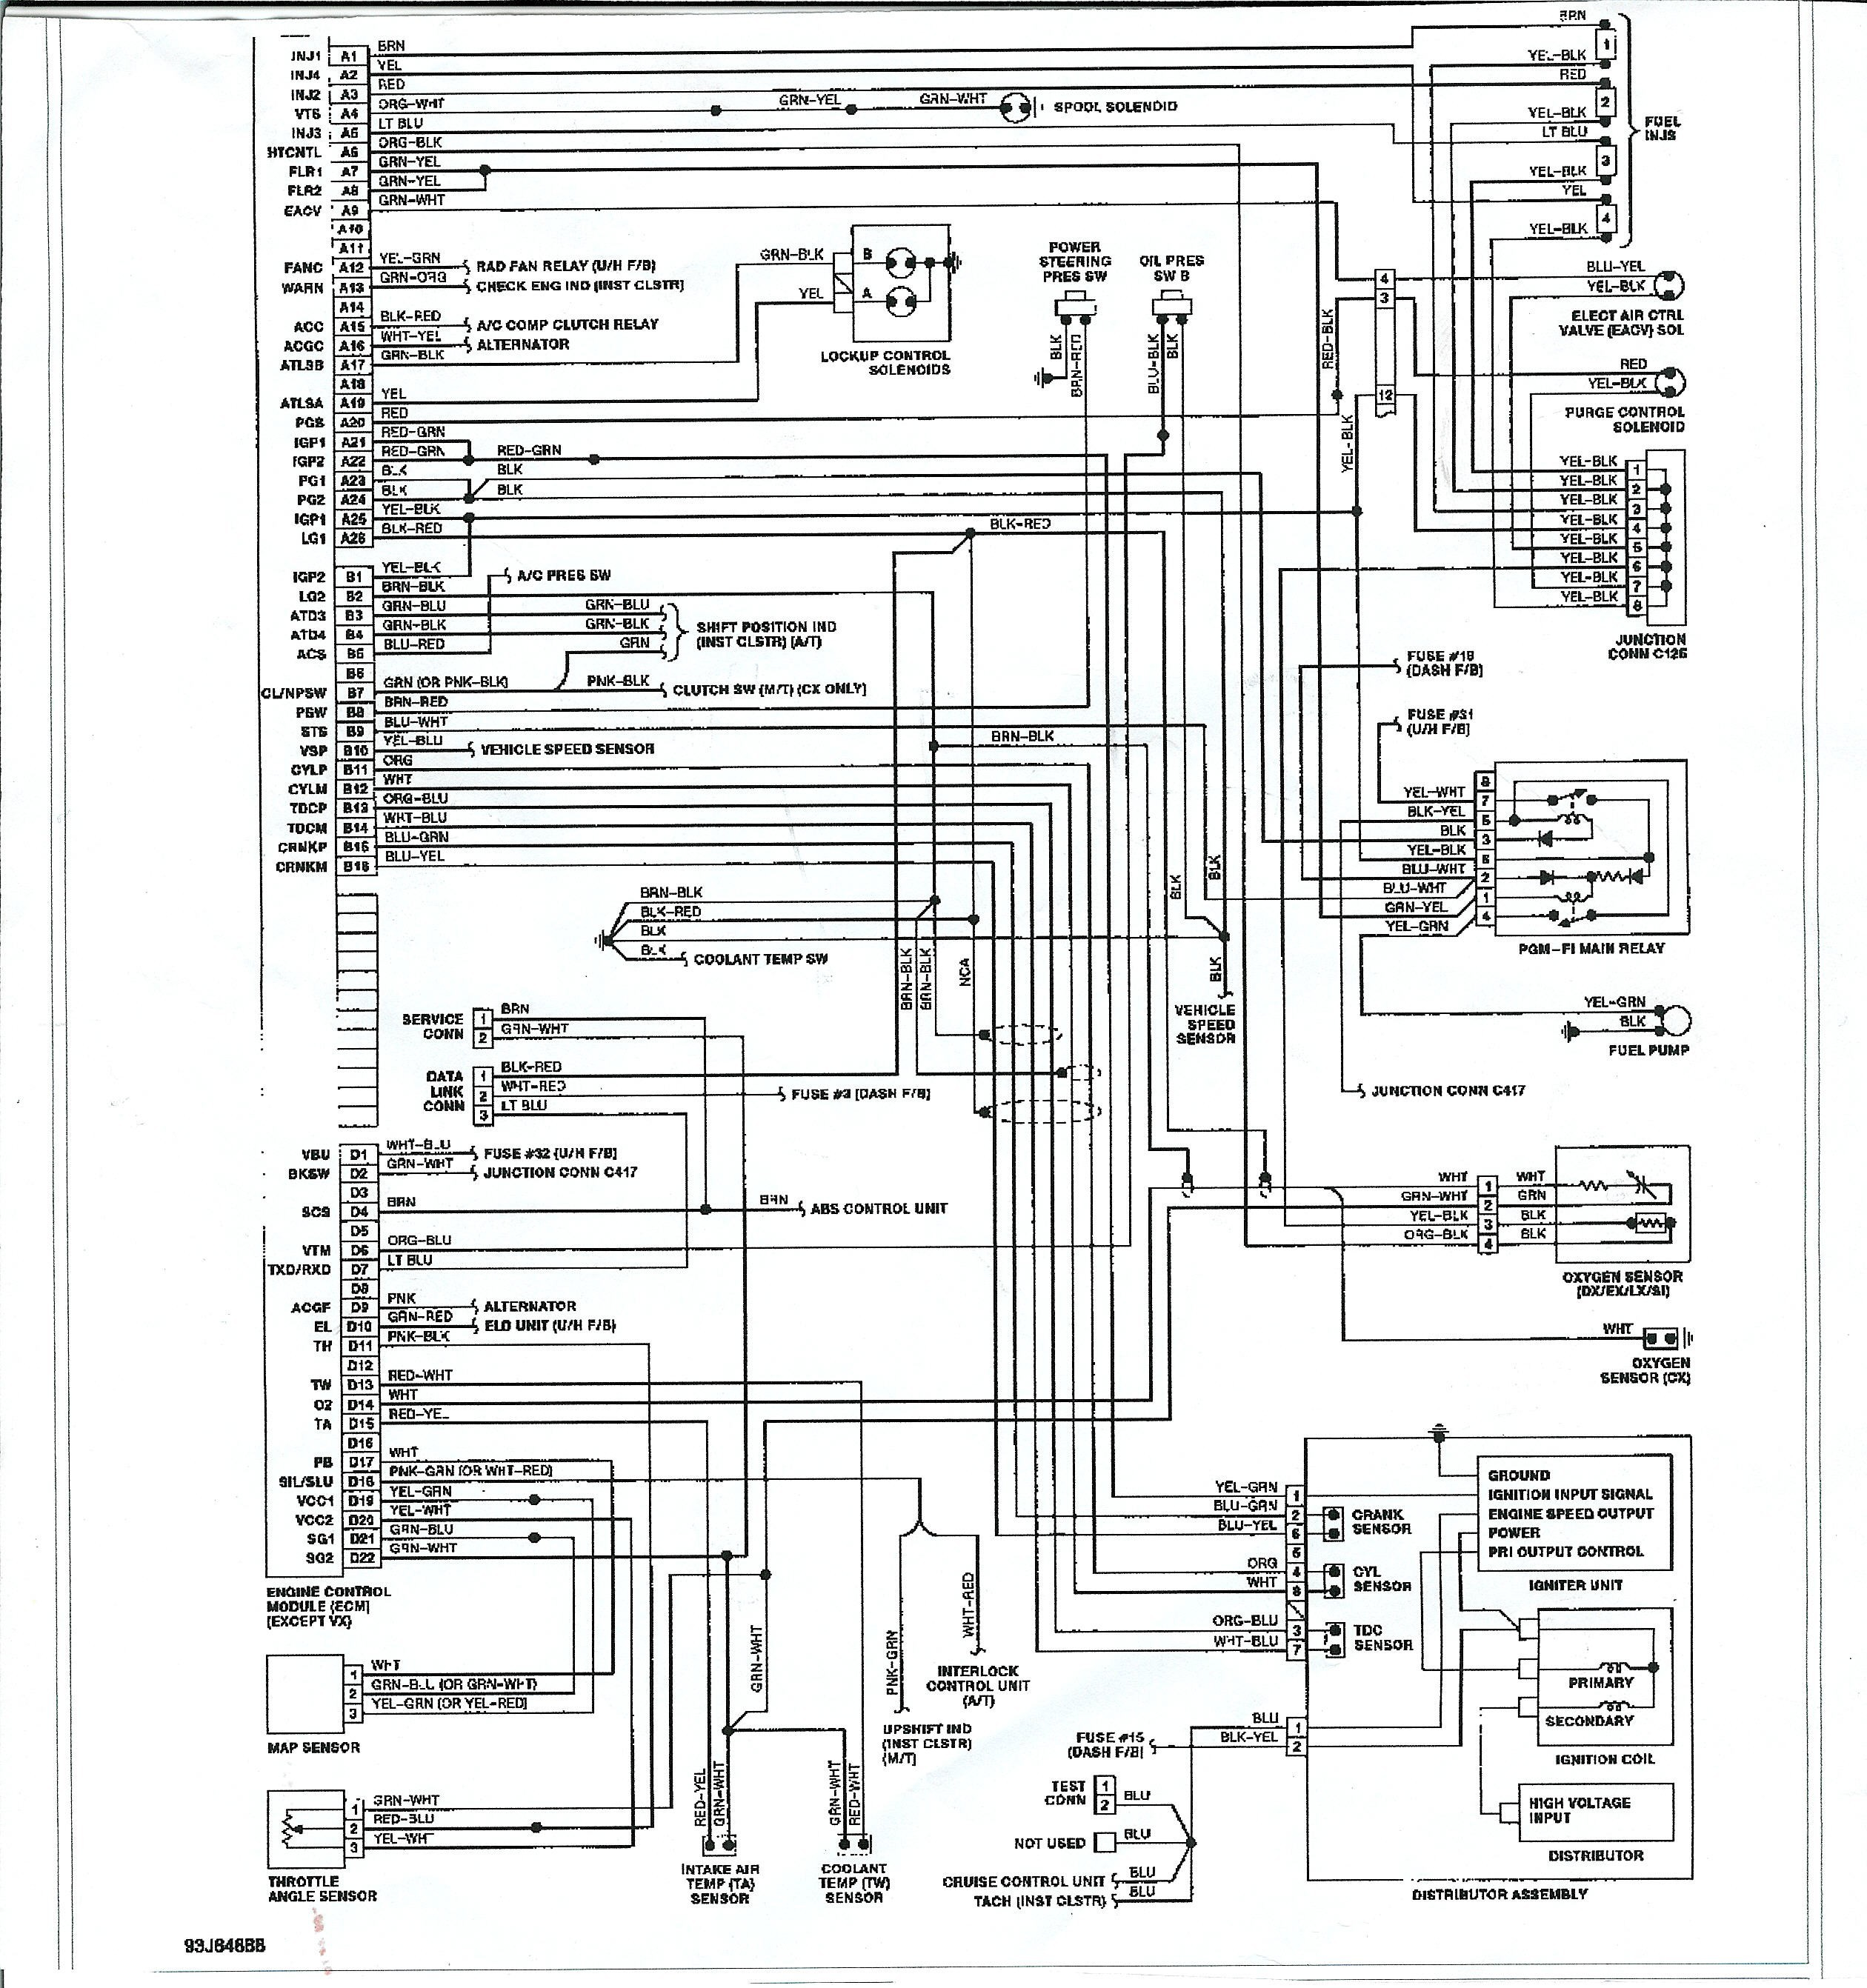 Honda Vtec Engine Diagram 2000 Honda Accord Engine Diagram Vw Transporter Wiring Diagram 95 Of Honda Vtec Engine Diagram